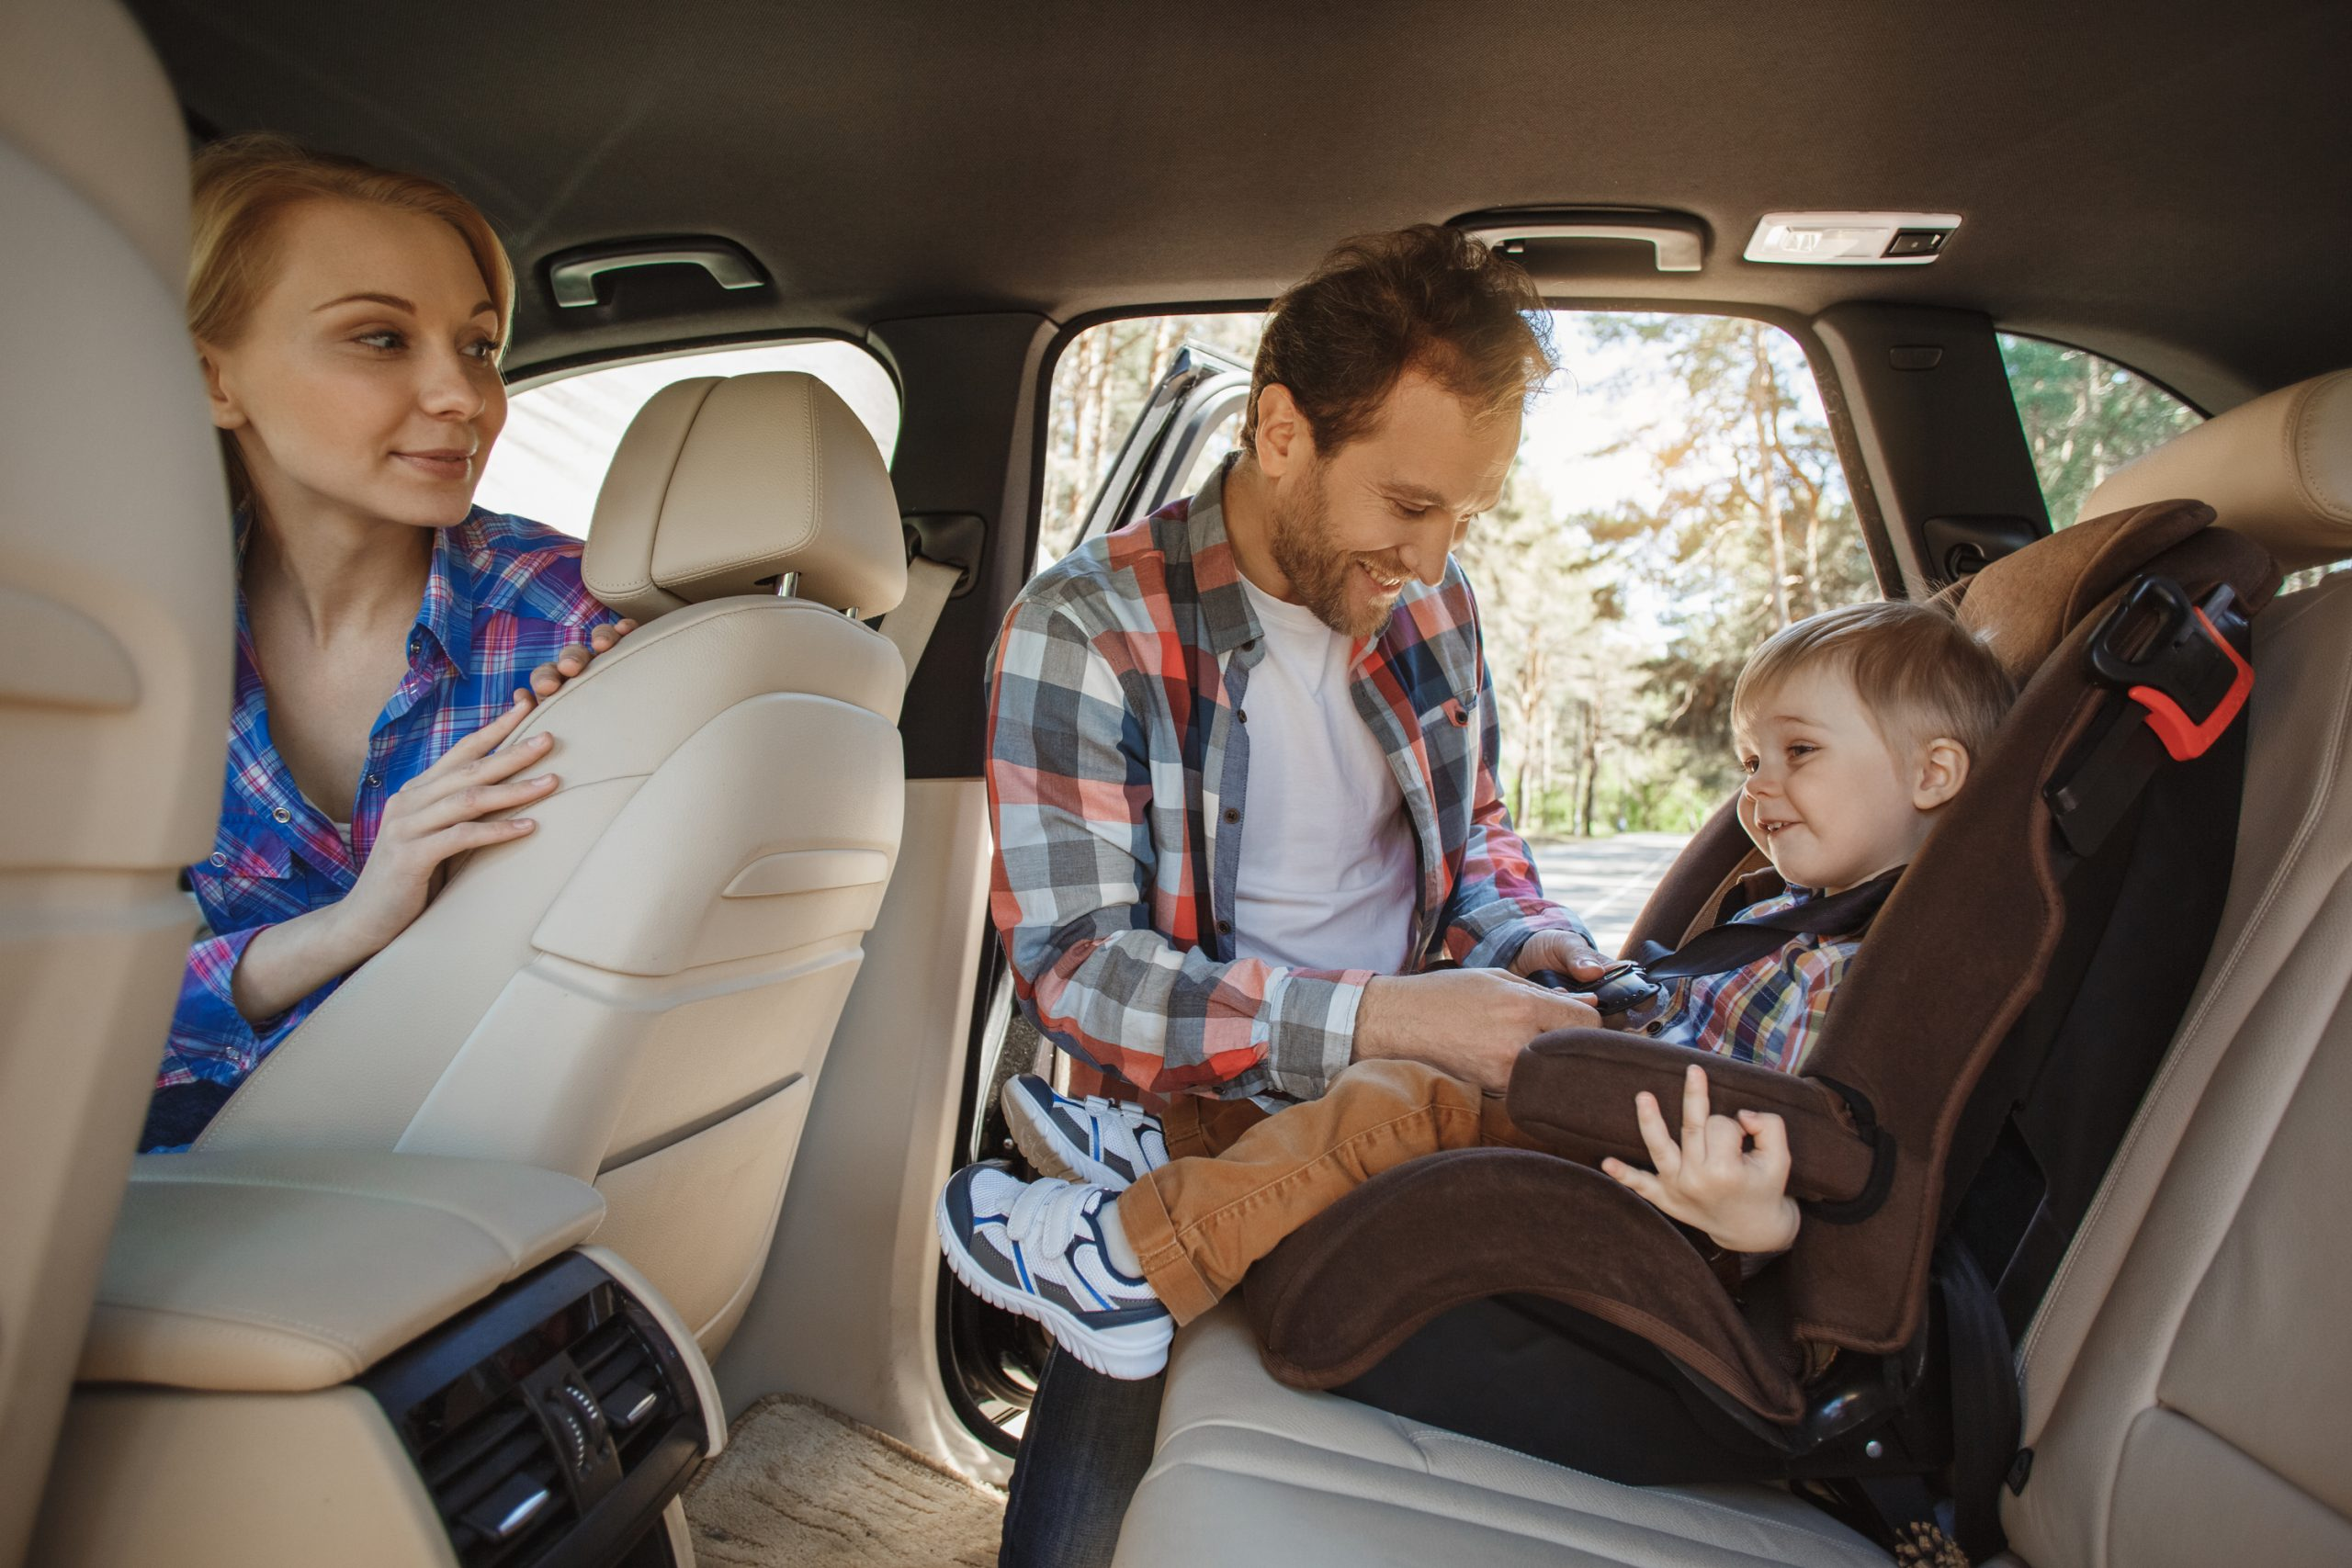 Parents buckling their child in a car seat. Another car hack for moms.